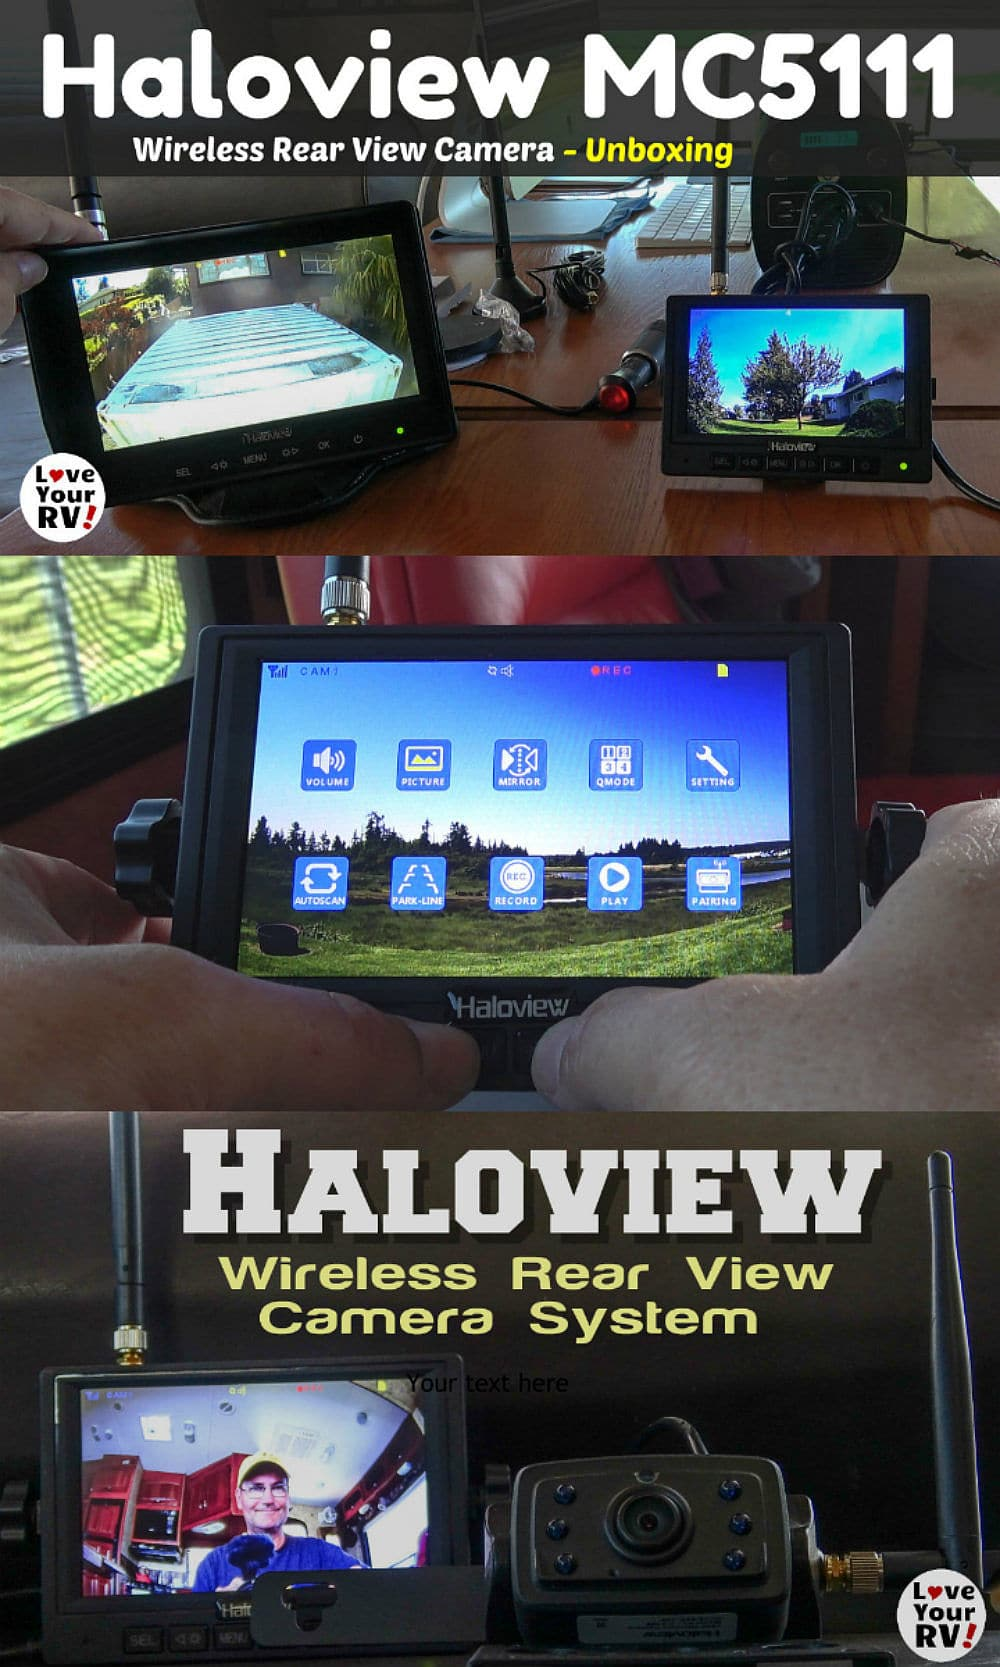 Review of the Haloview MC5111 wireless RV rear monitor camera system by the Love Your RV blog